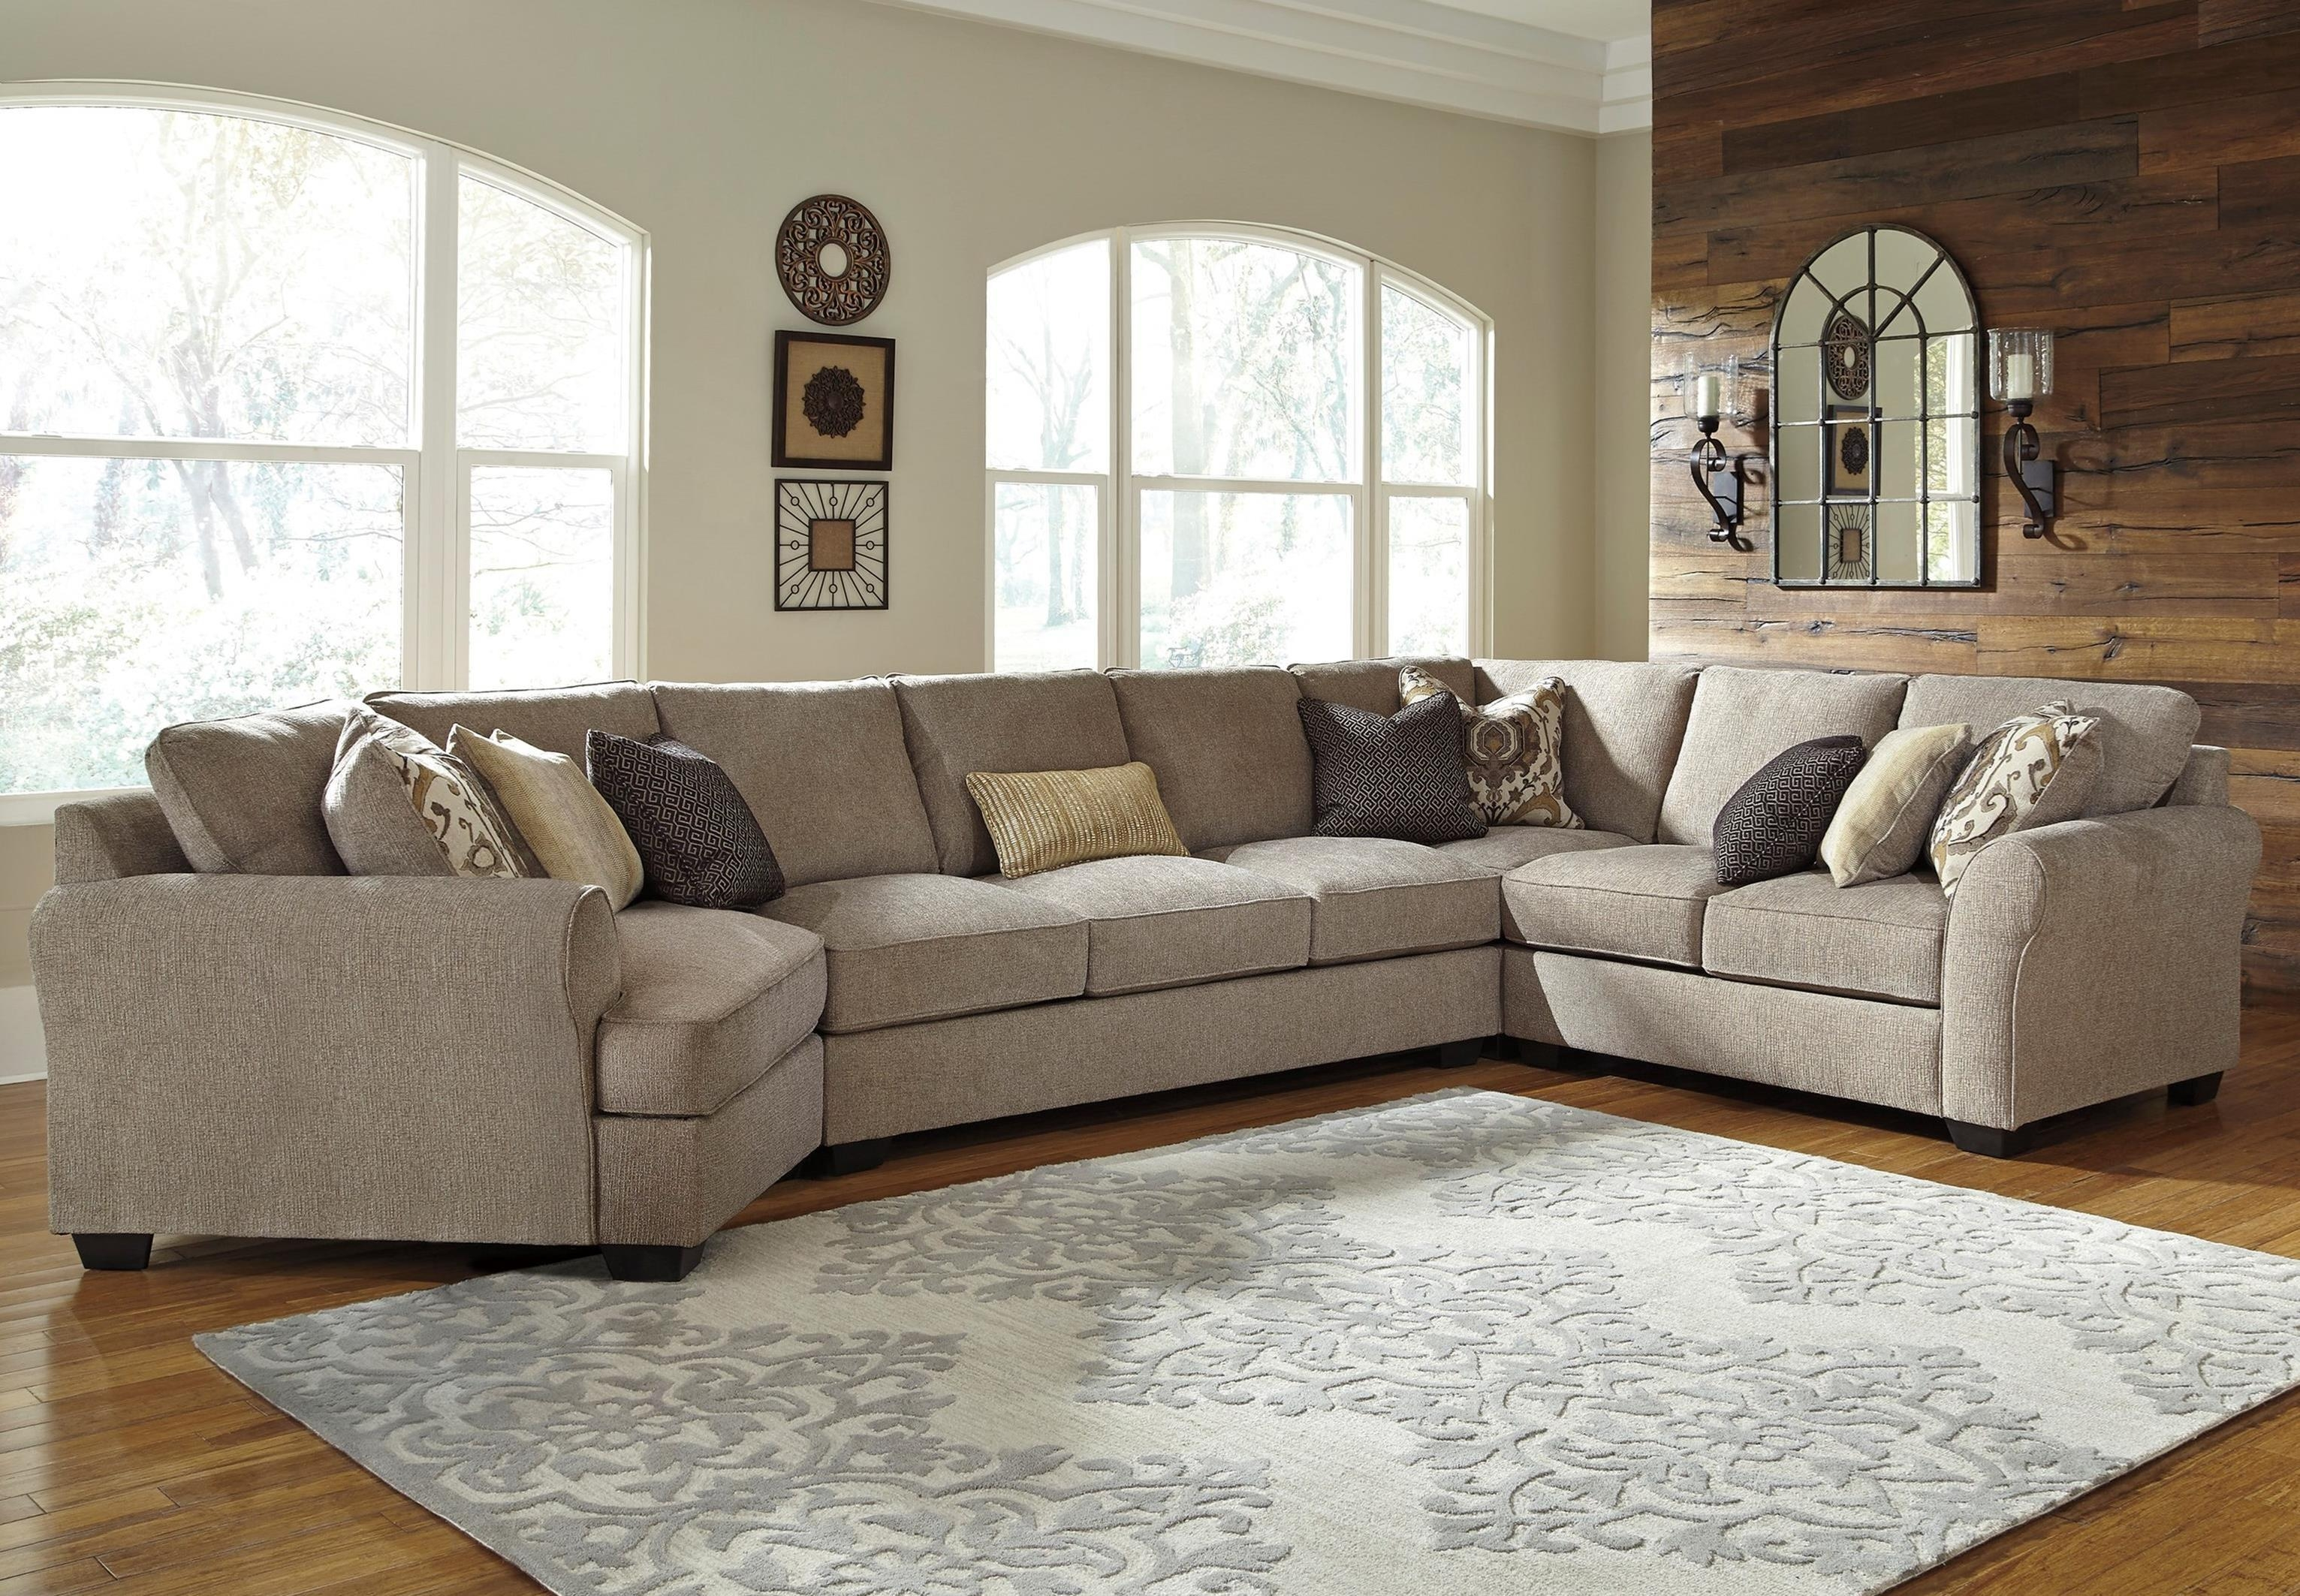 Benchcraft Pantomine 4 Piece Sectional With Left Cuddler & Armless With Armless Sectional Sofa (Image 2 of 15)